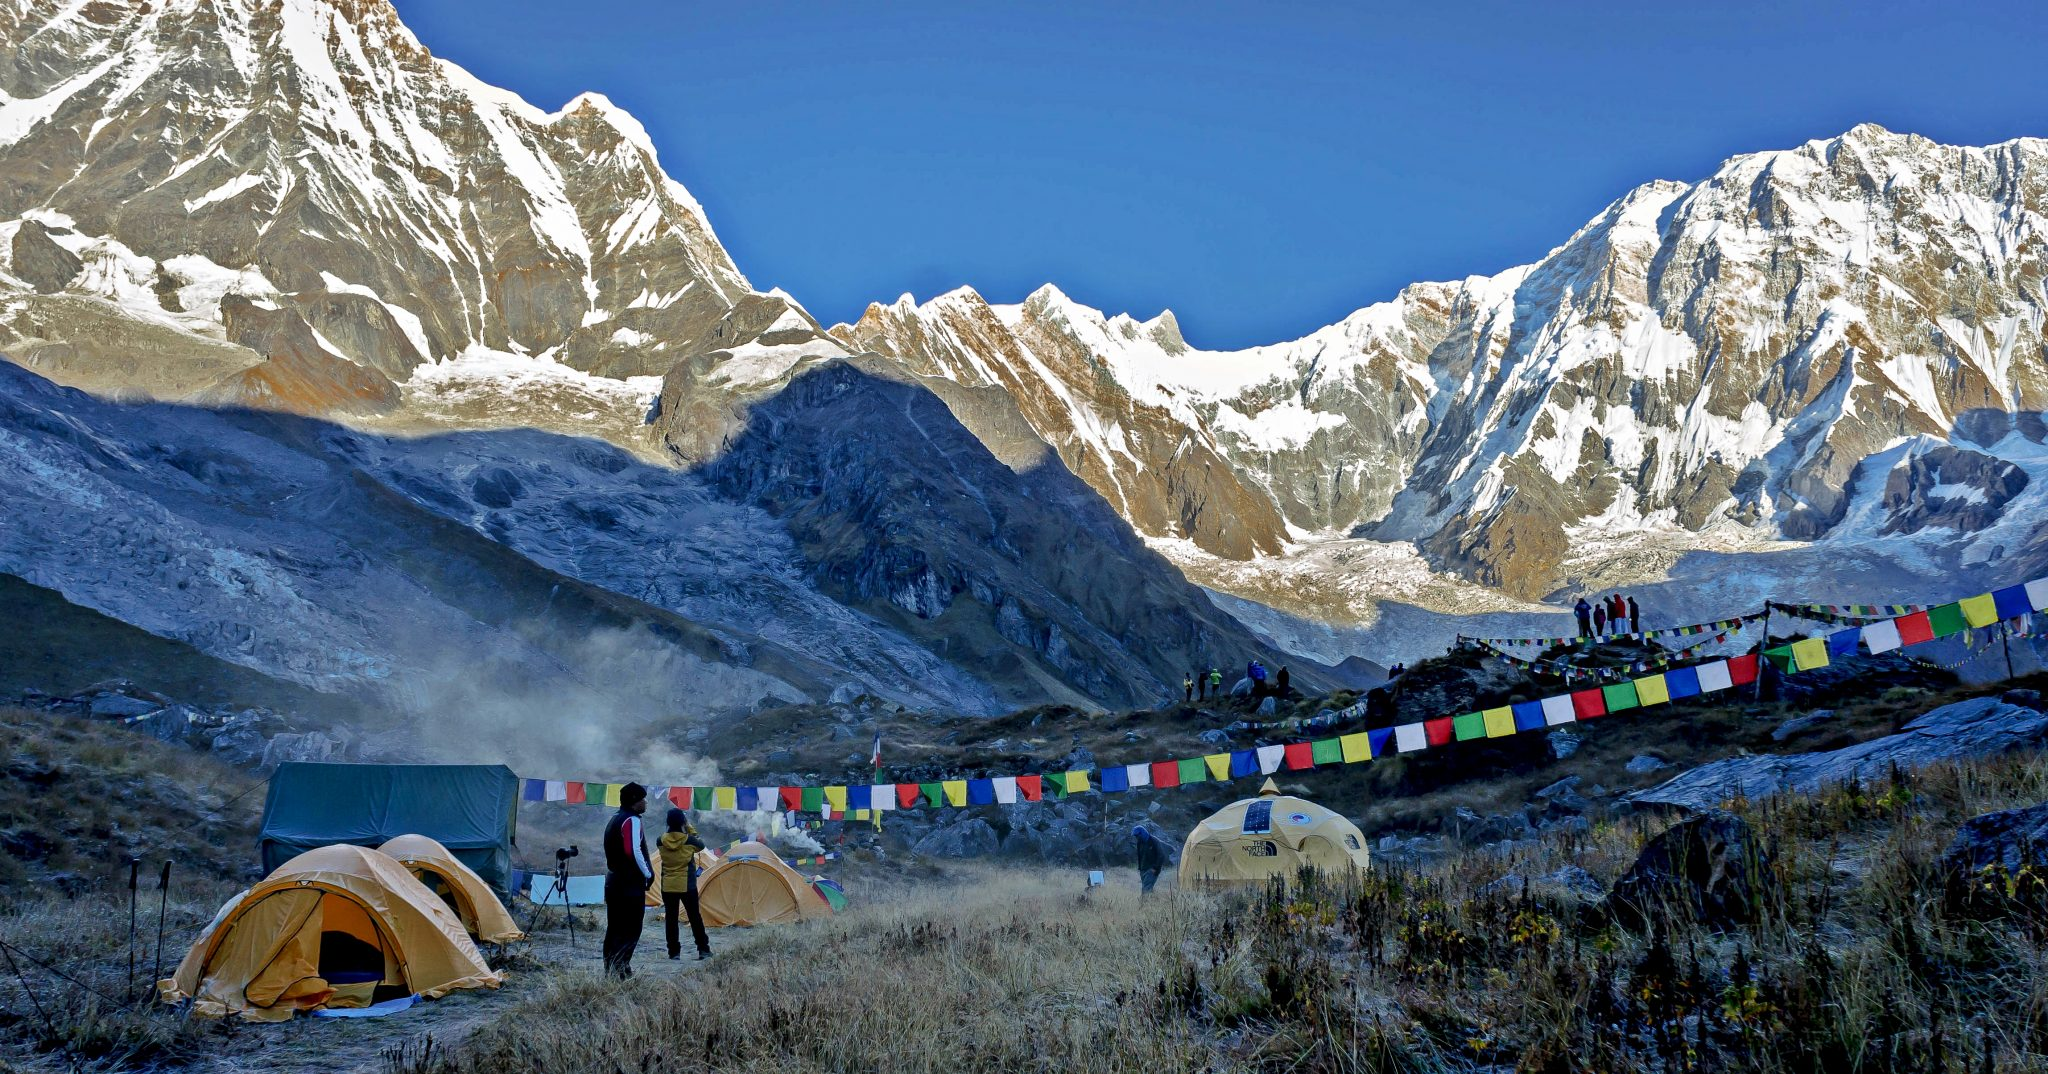 Island Peak Climbing with Everest Base Camp Trek - 19 Annapurna base camp trek pictures